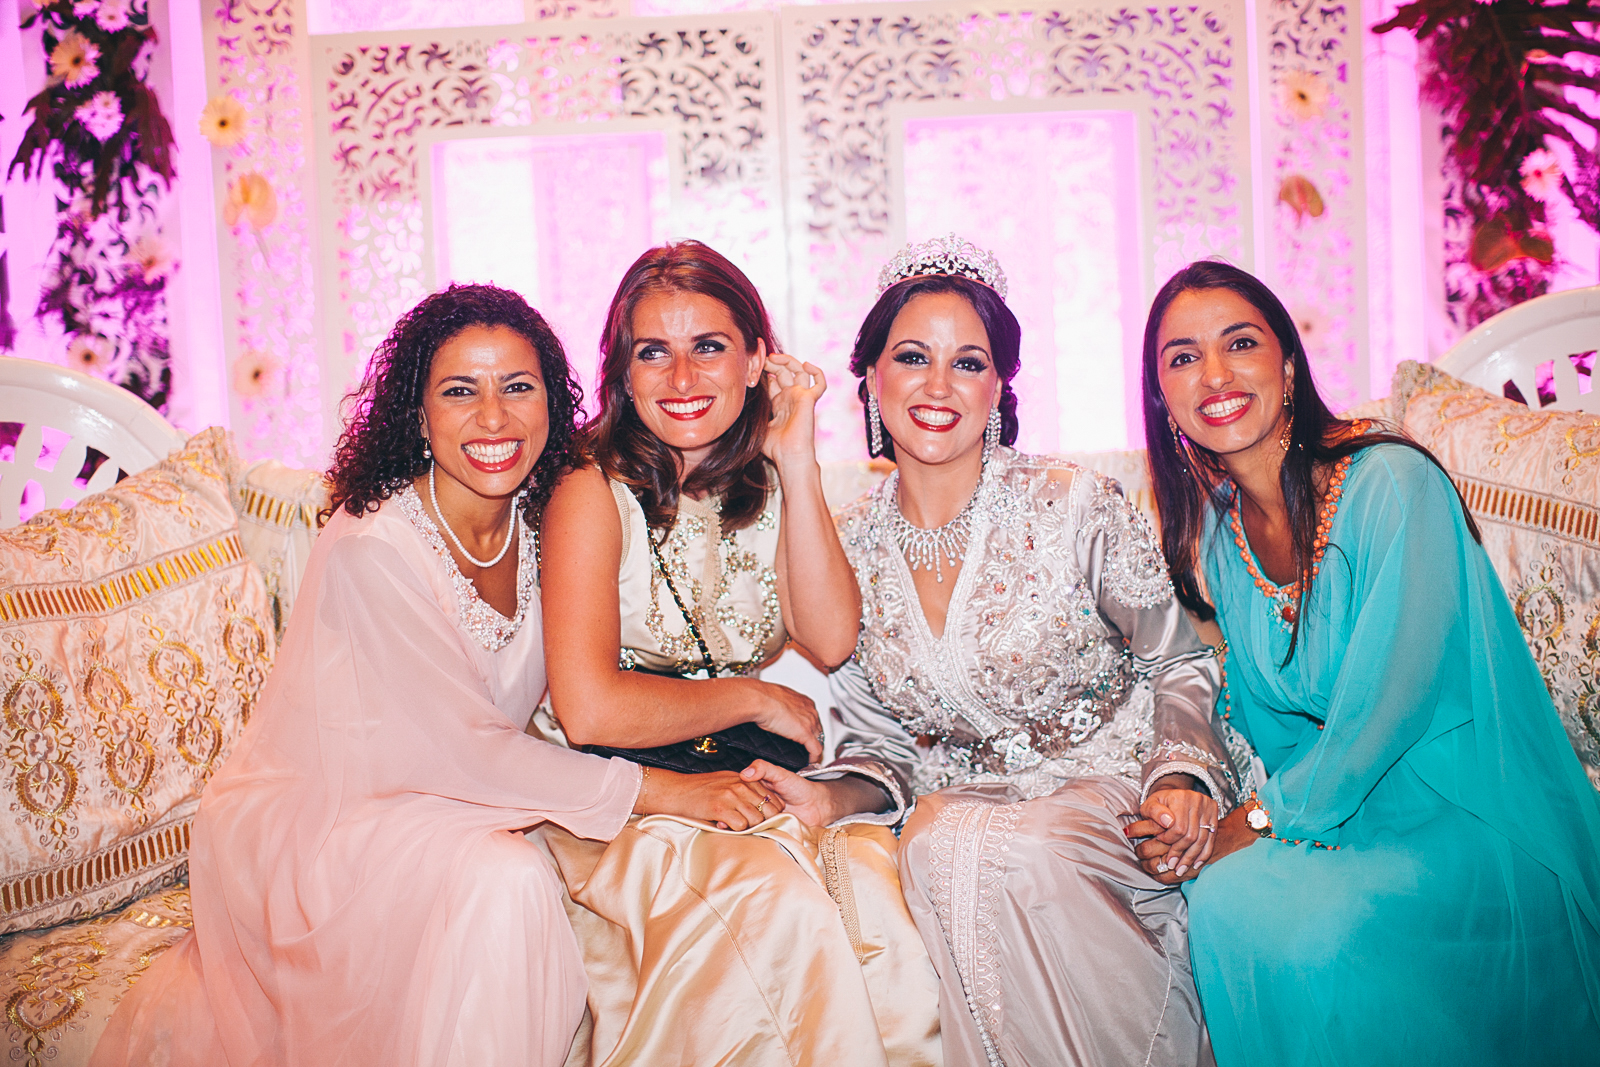 traditional_moroccan_wedding_photographry_casablanca_morocco_houda_vivek_ebony_siovhan_bokeh_photography_080.jpg